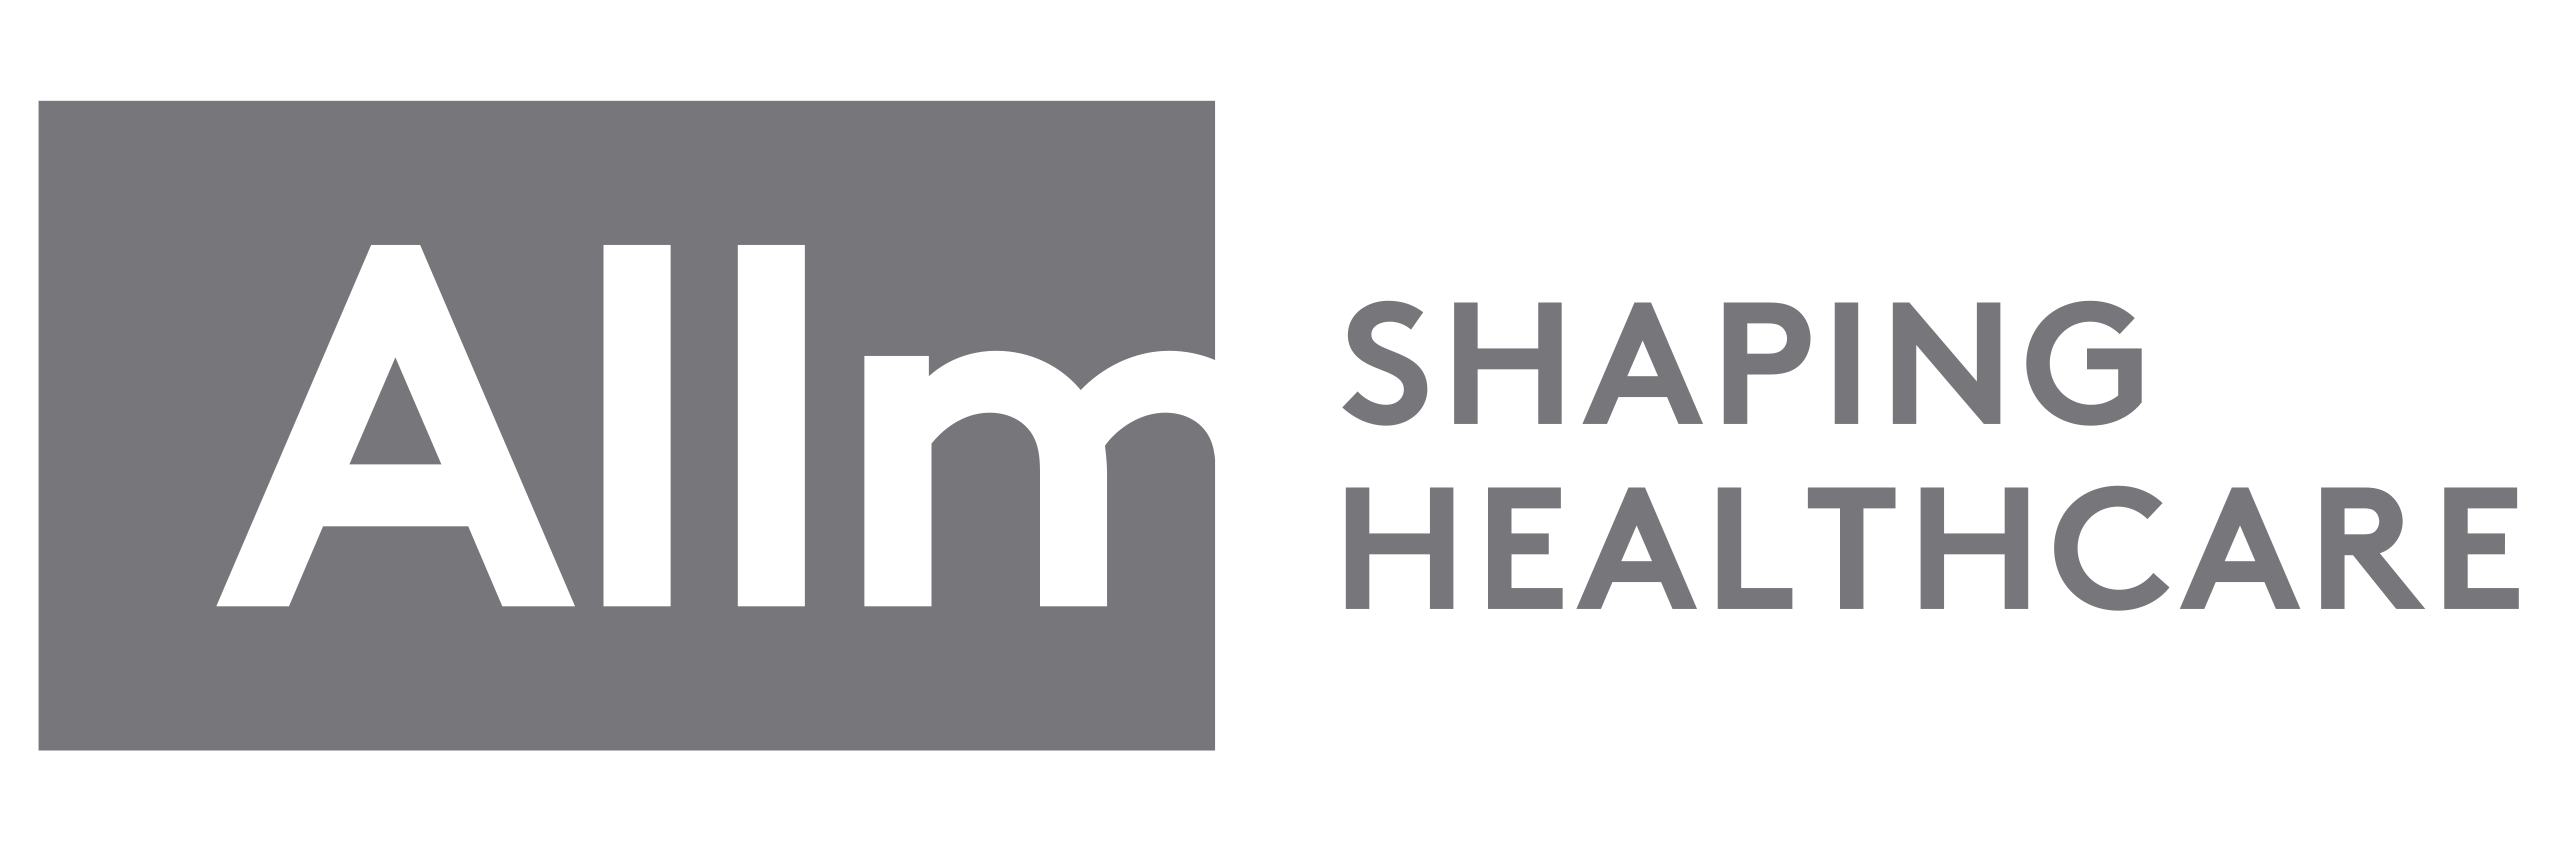 Allm shaping healthcare